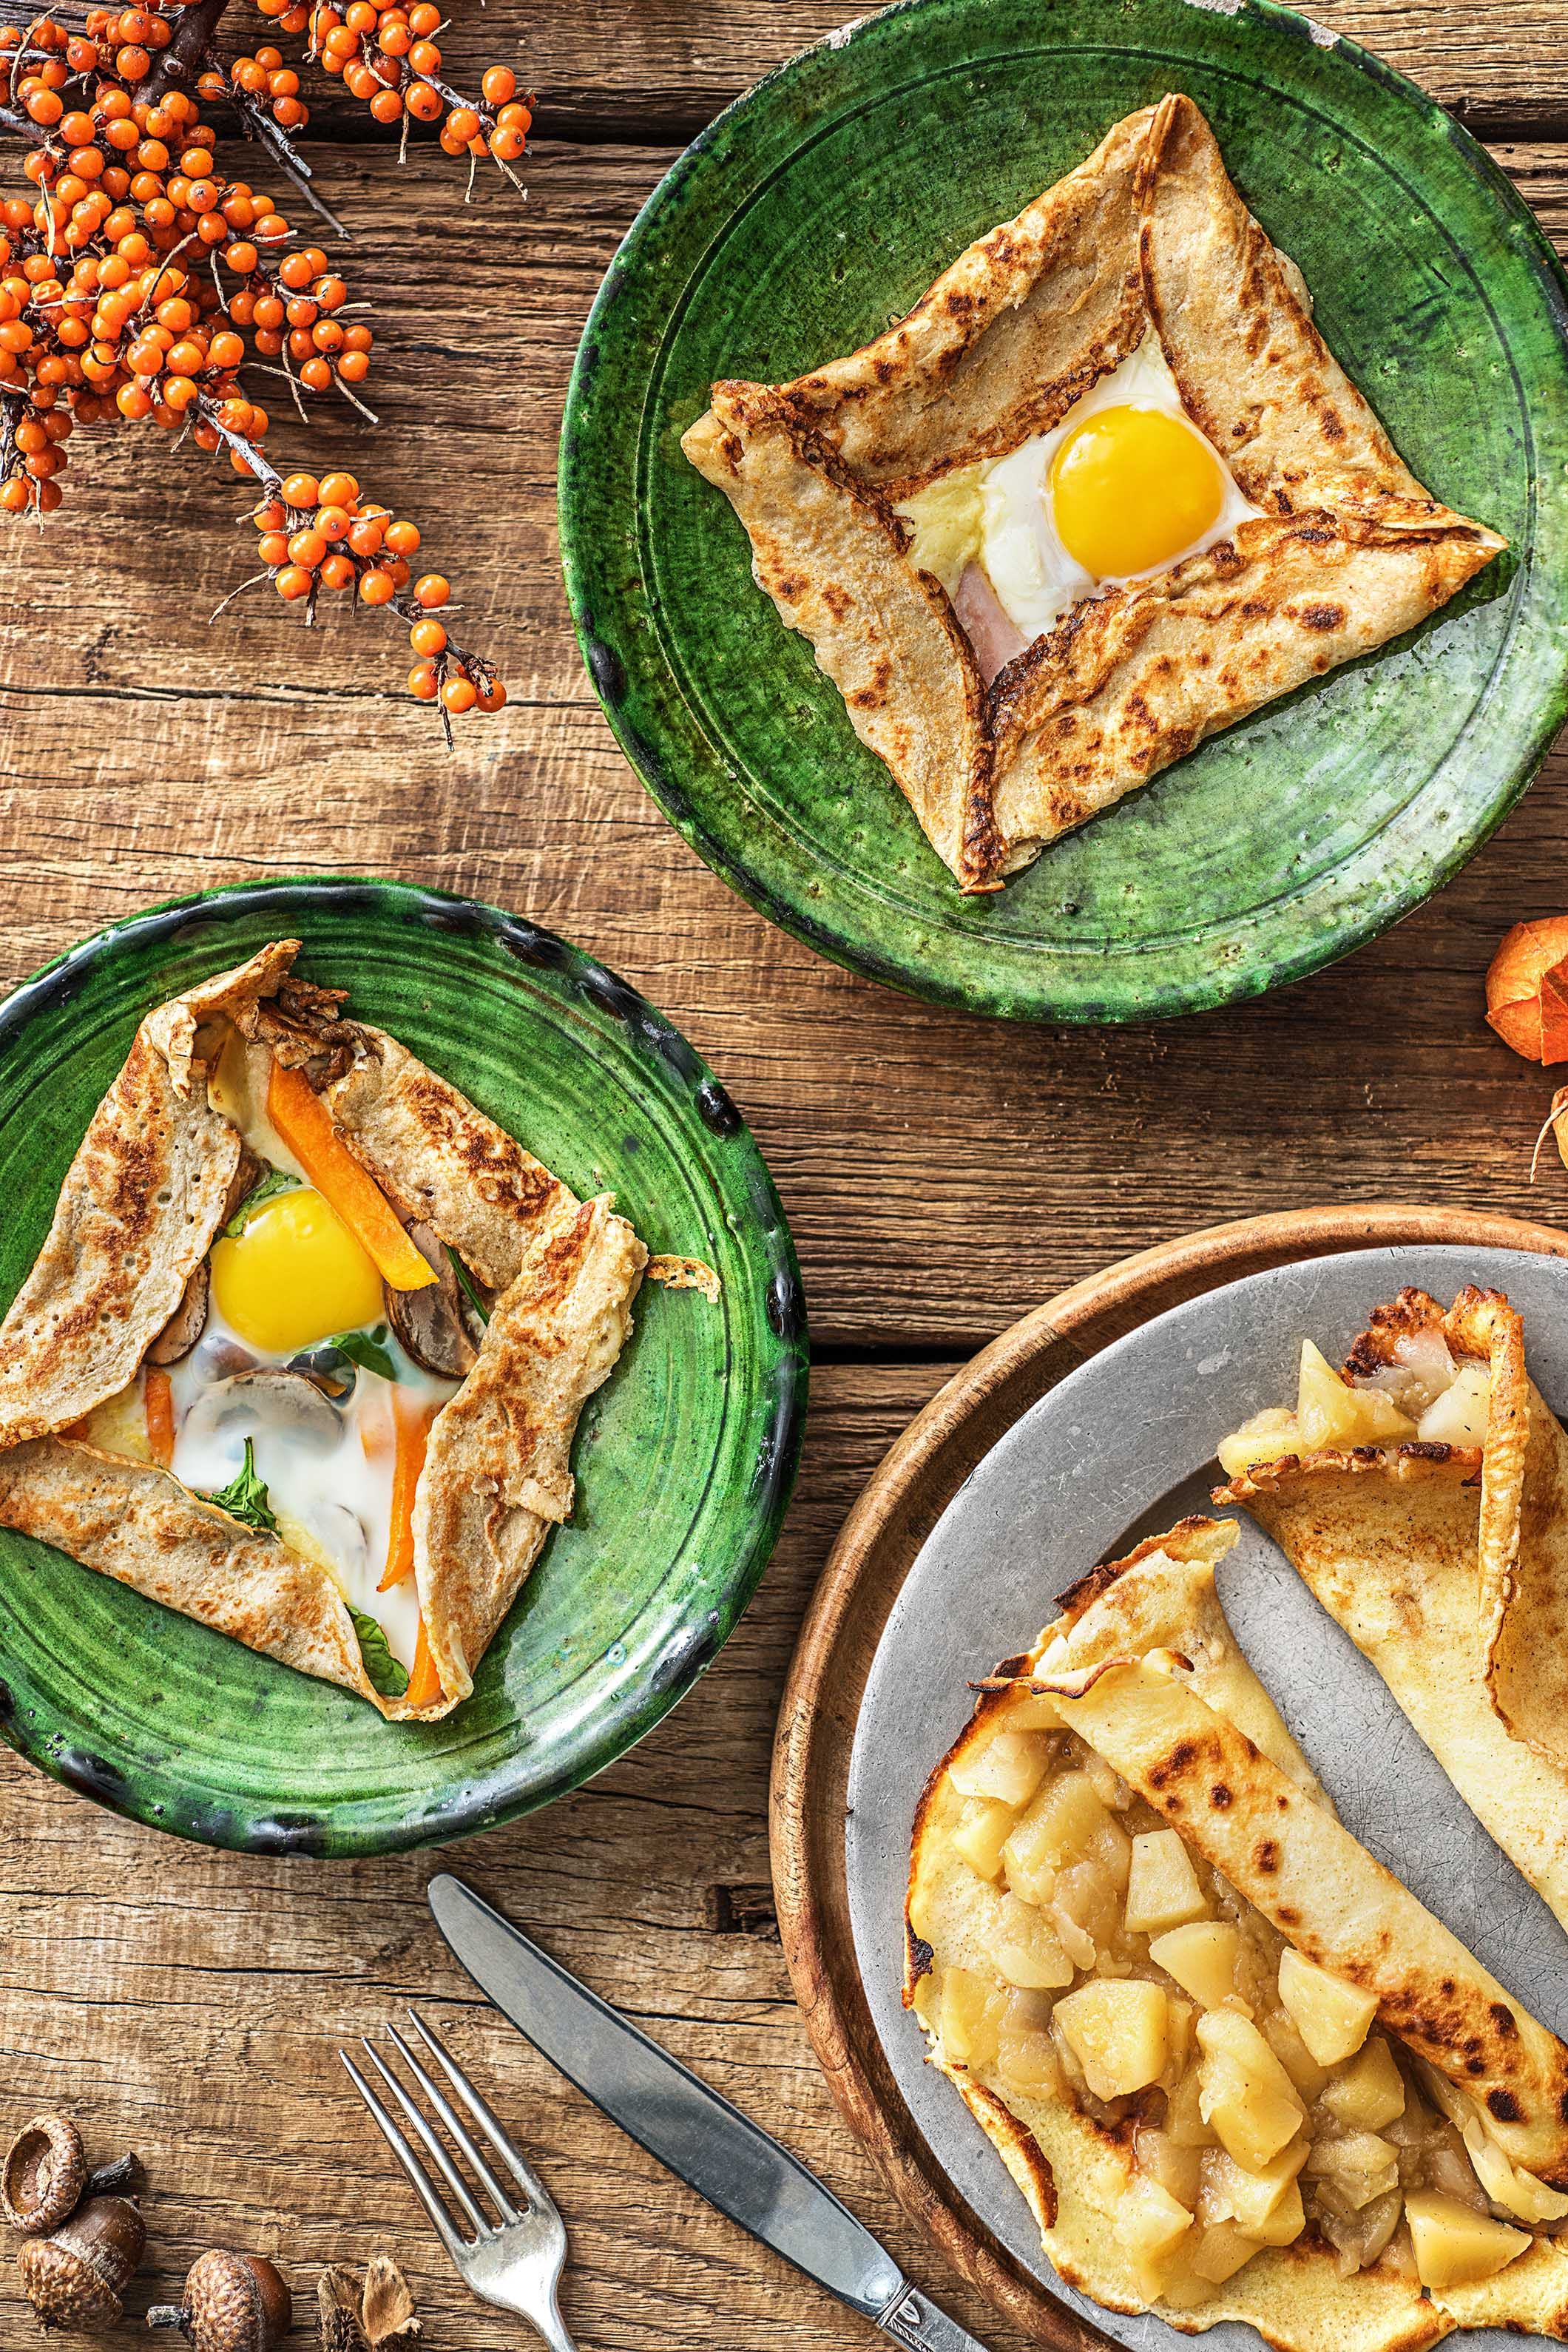 How i conquered one of my biggest cooking fears the fresh times cooking fears crepes galettes recipe hellofresh forumfinder Image collections